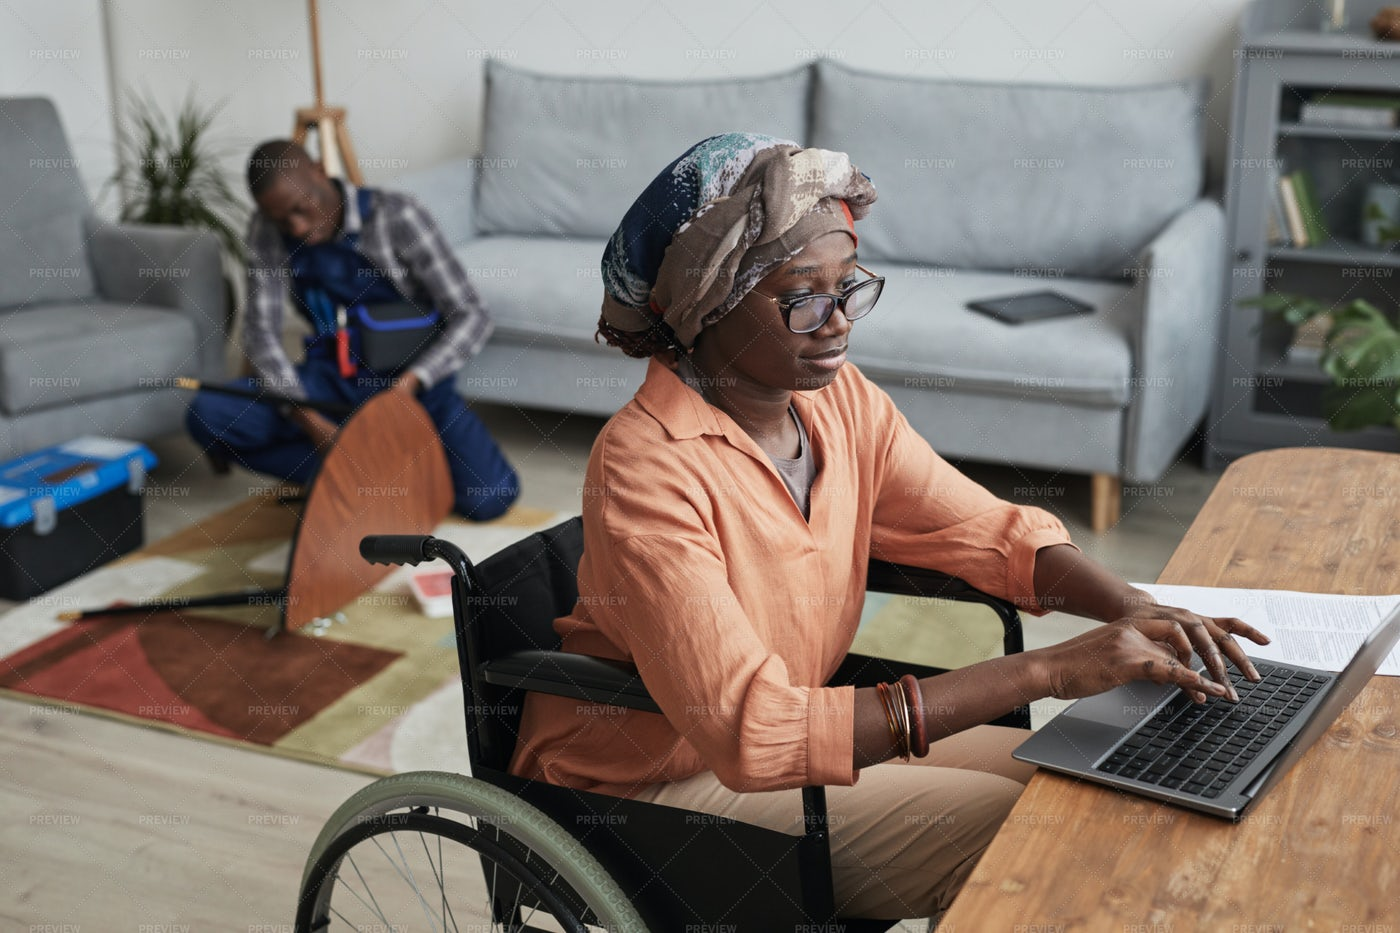 Home Repair Services For Disabled Woman: Stock Photos